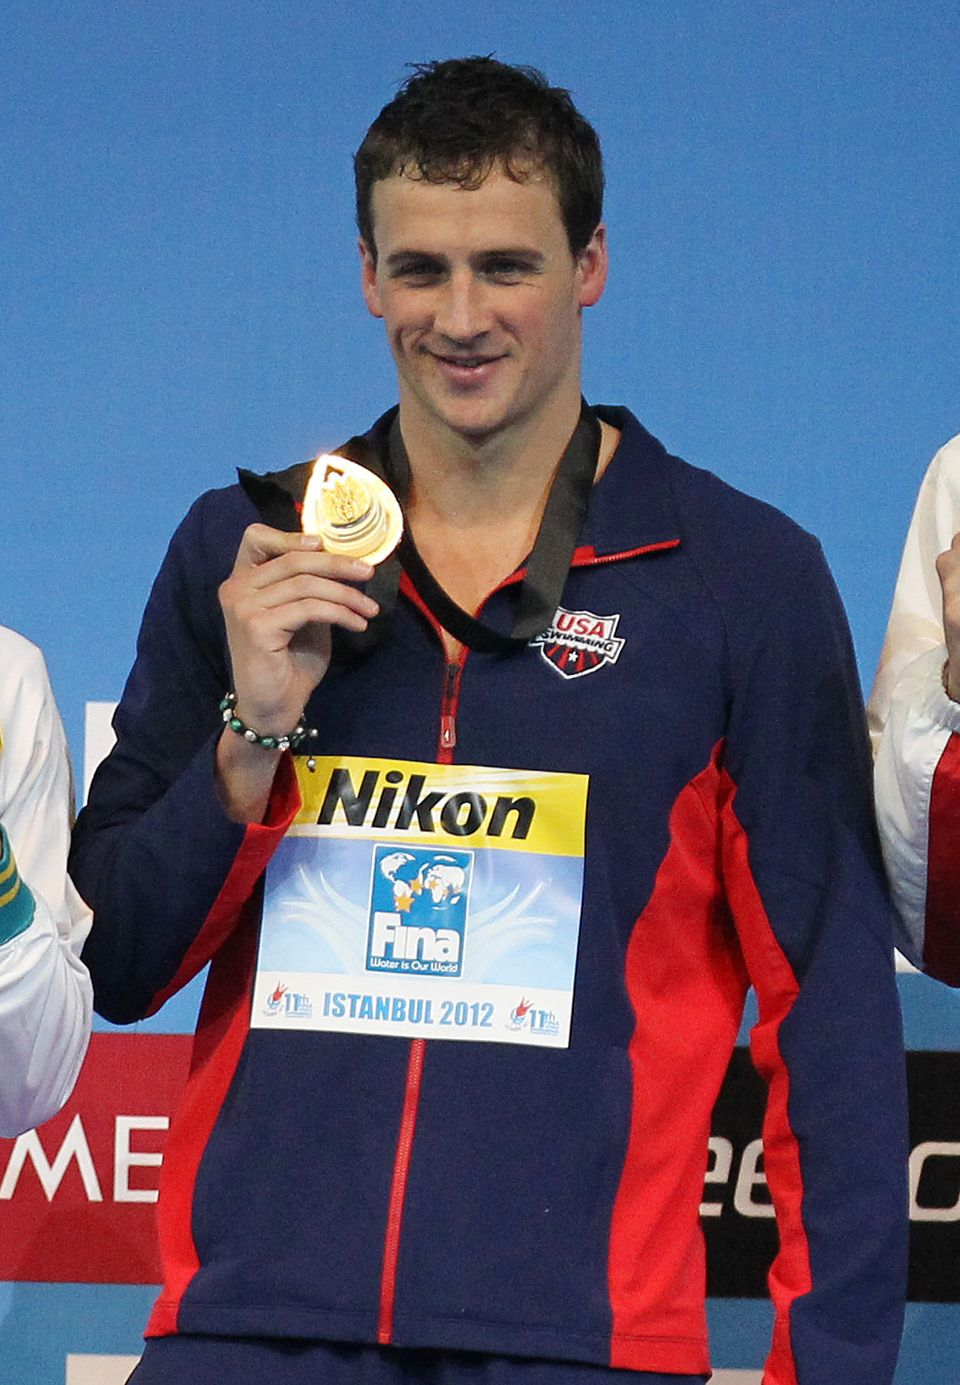 The Gold medalist of Cuban descent Ryan Lochte rose to glory this year at the London Olympics. With eleven Olympic medals, th